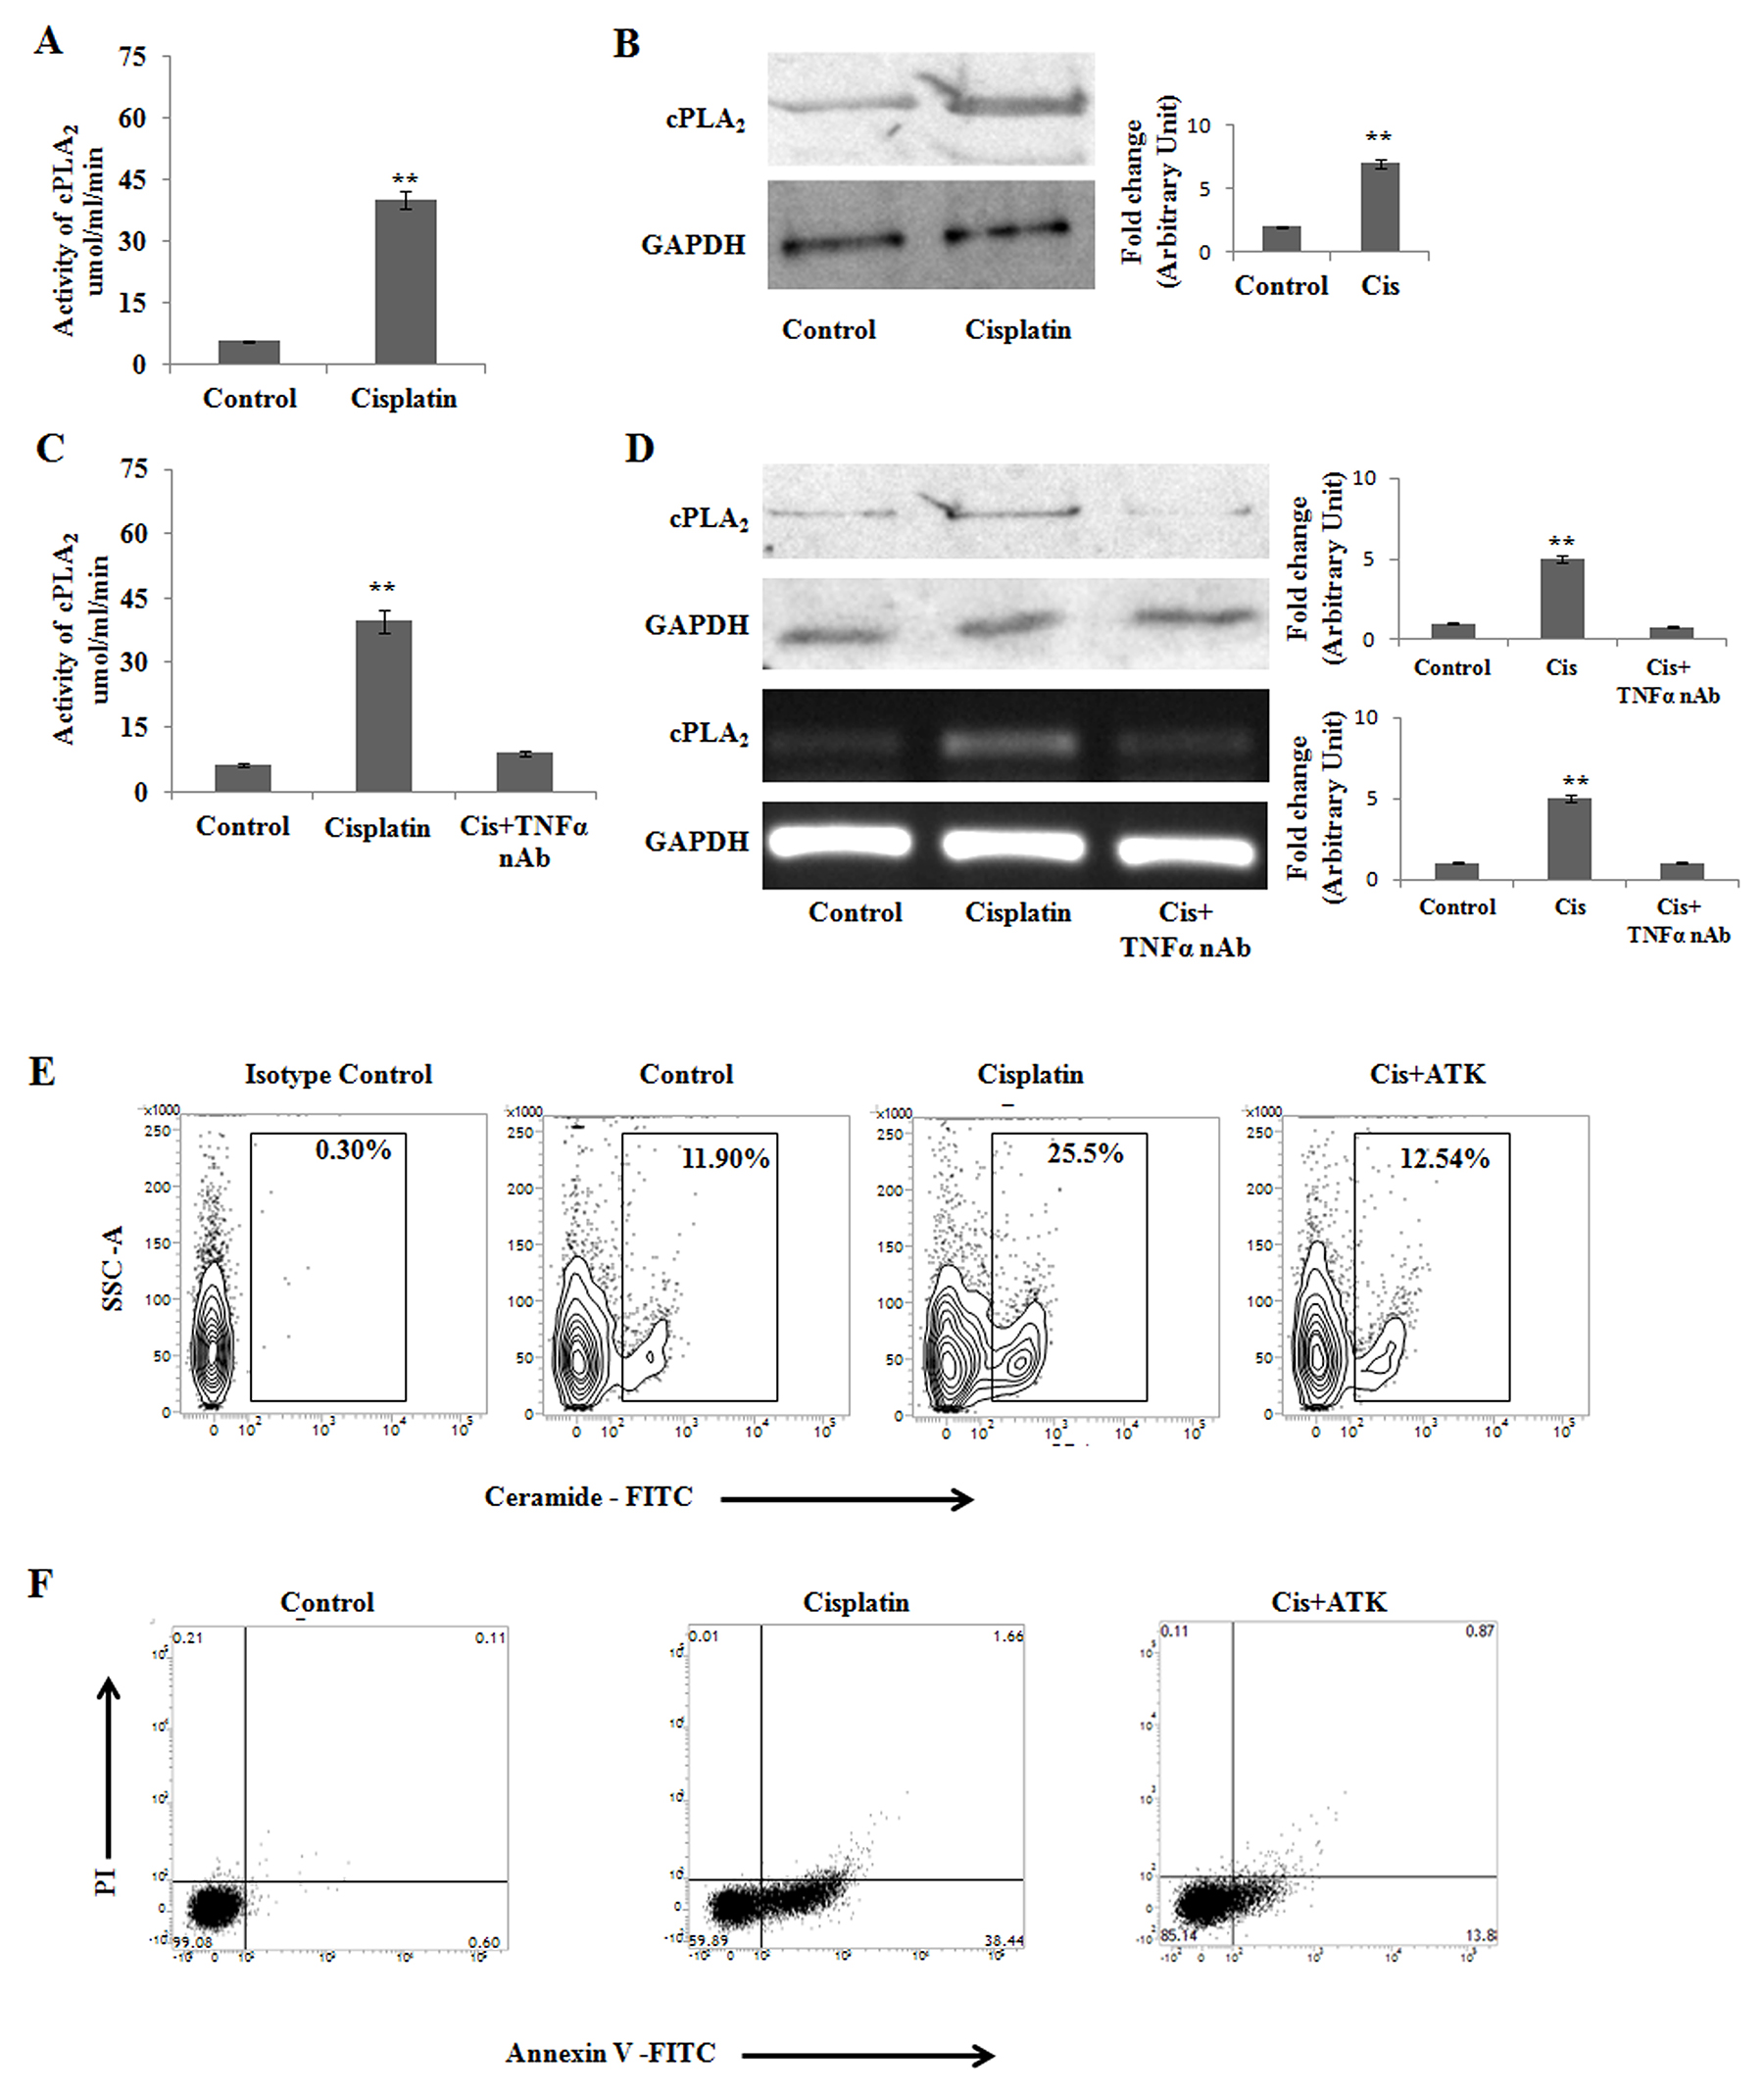 cPLA2 modulates cisplatin mediated apoptosis in PKCδ silenced B16F10 melanoma cells.